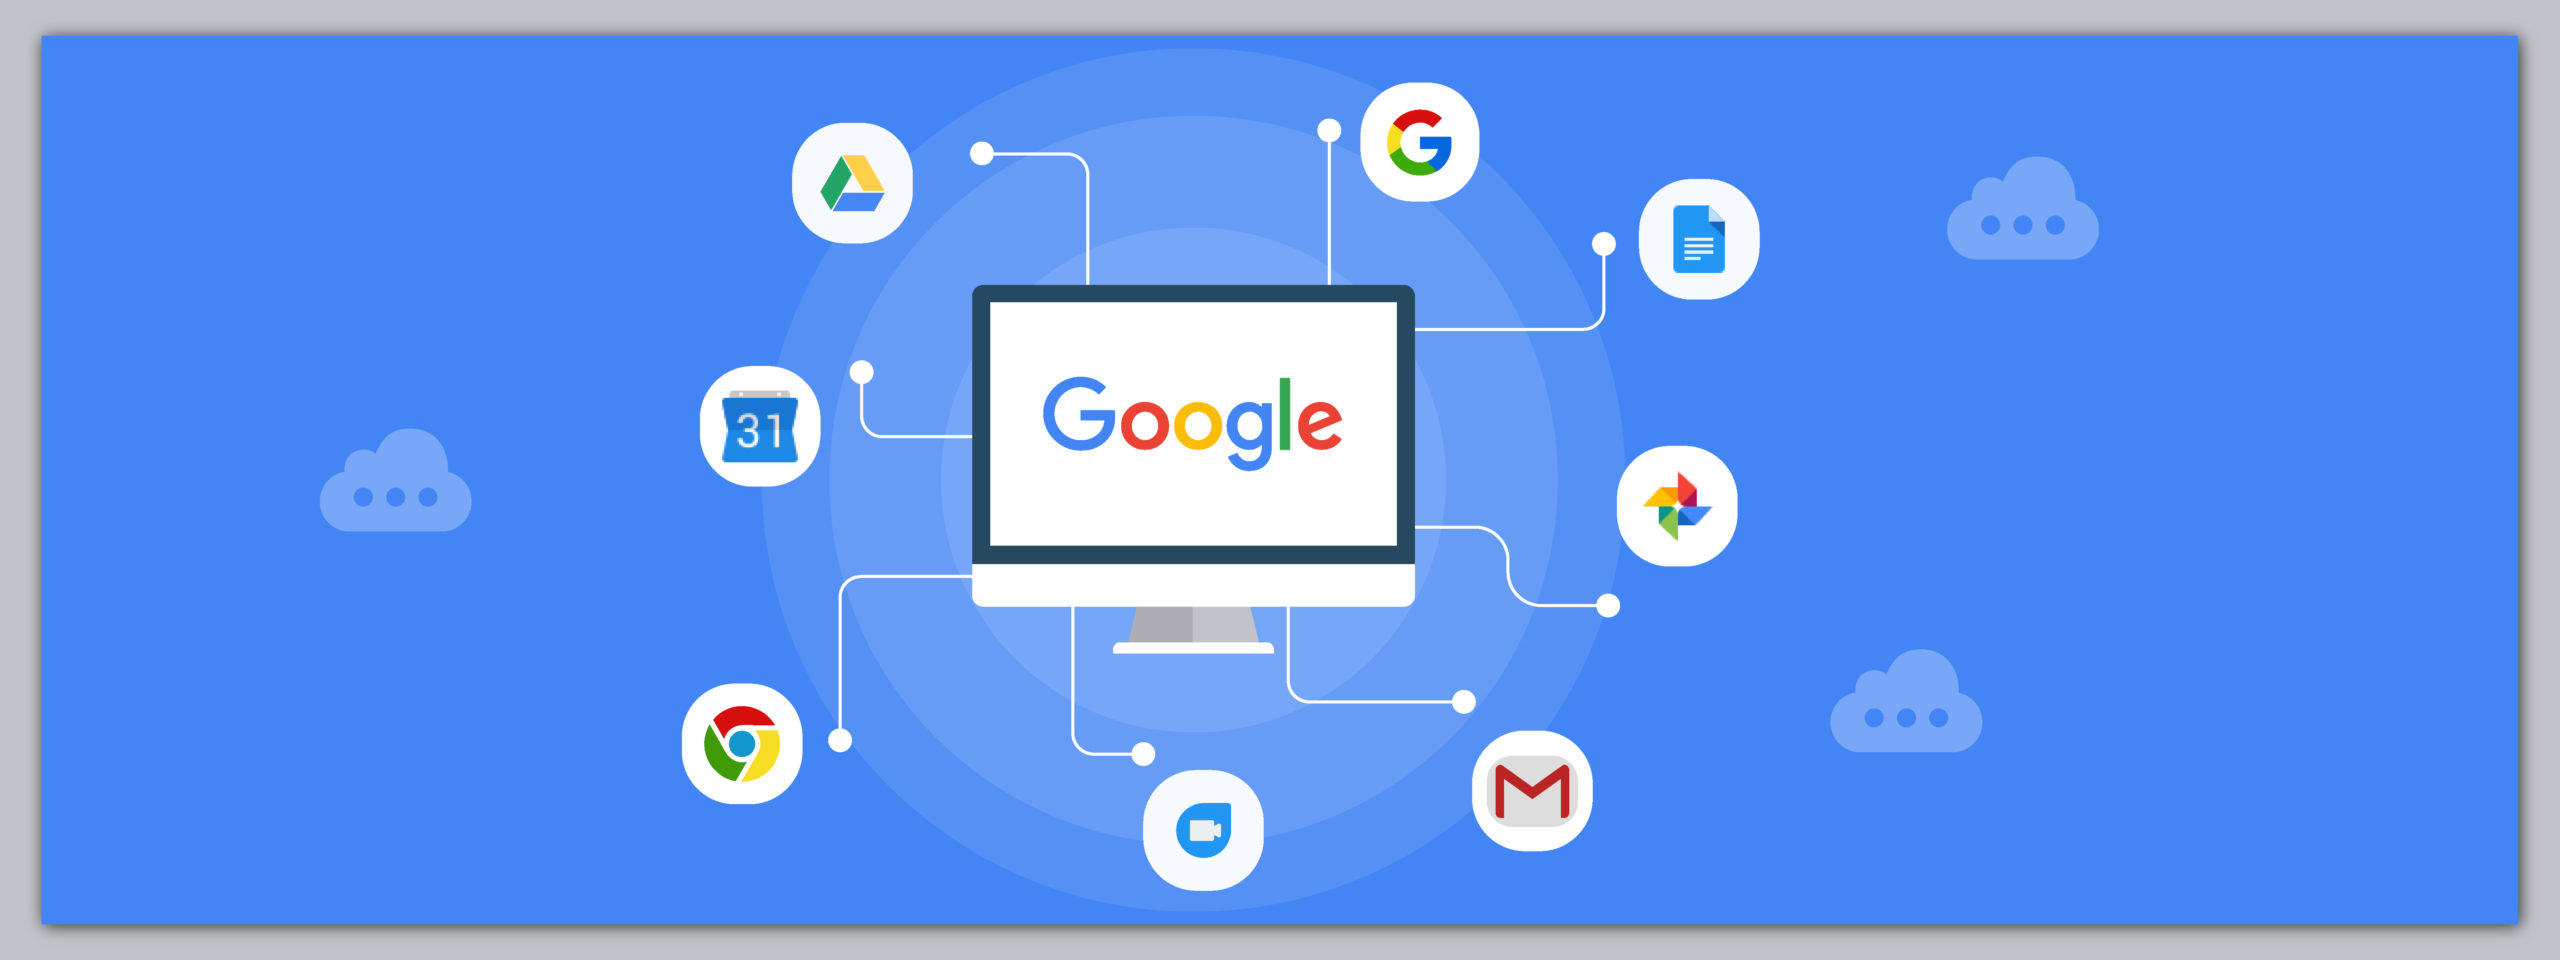 How to free up space on my Google account | Computing Australia